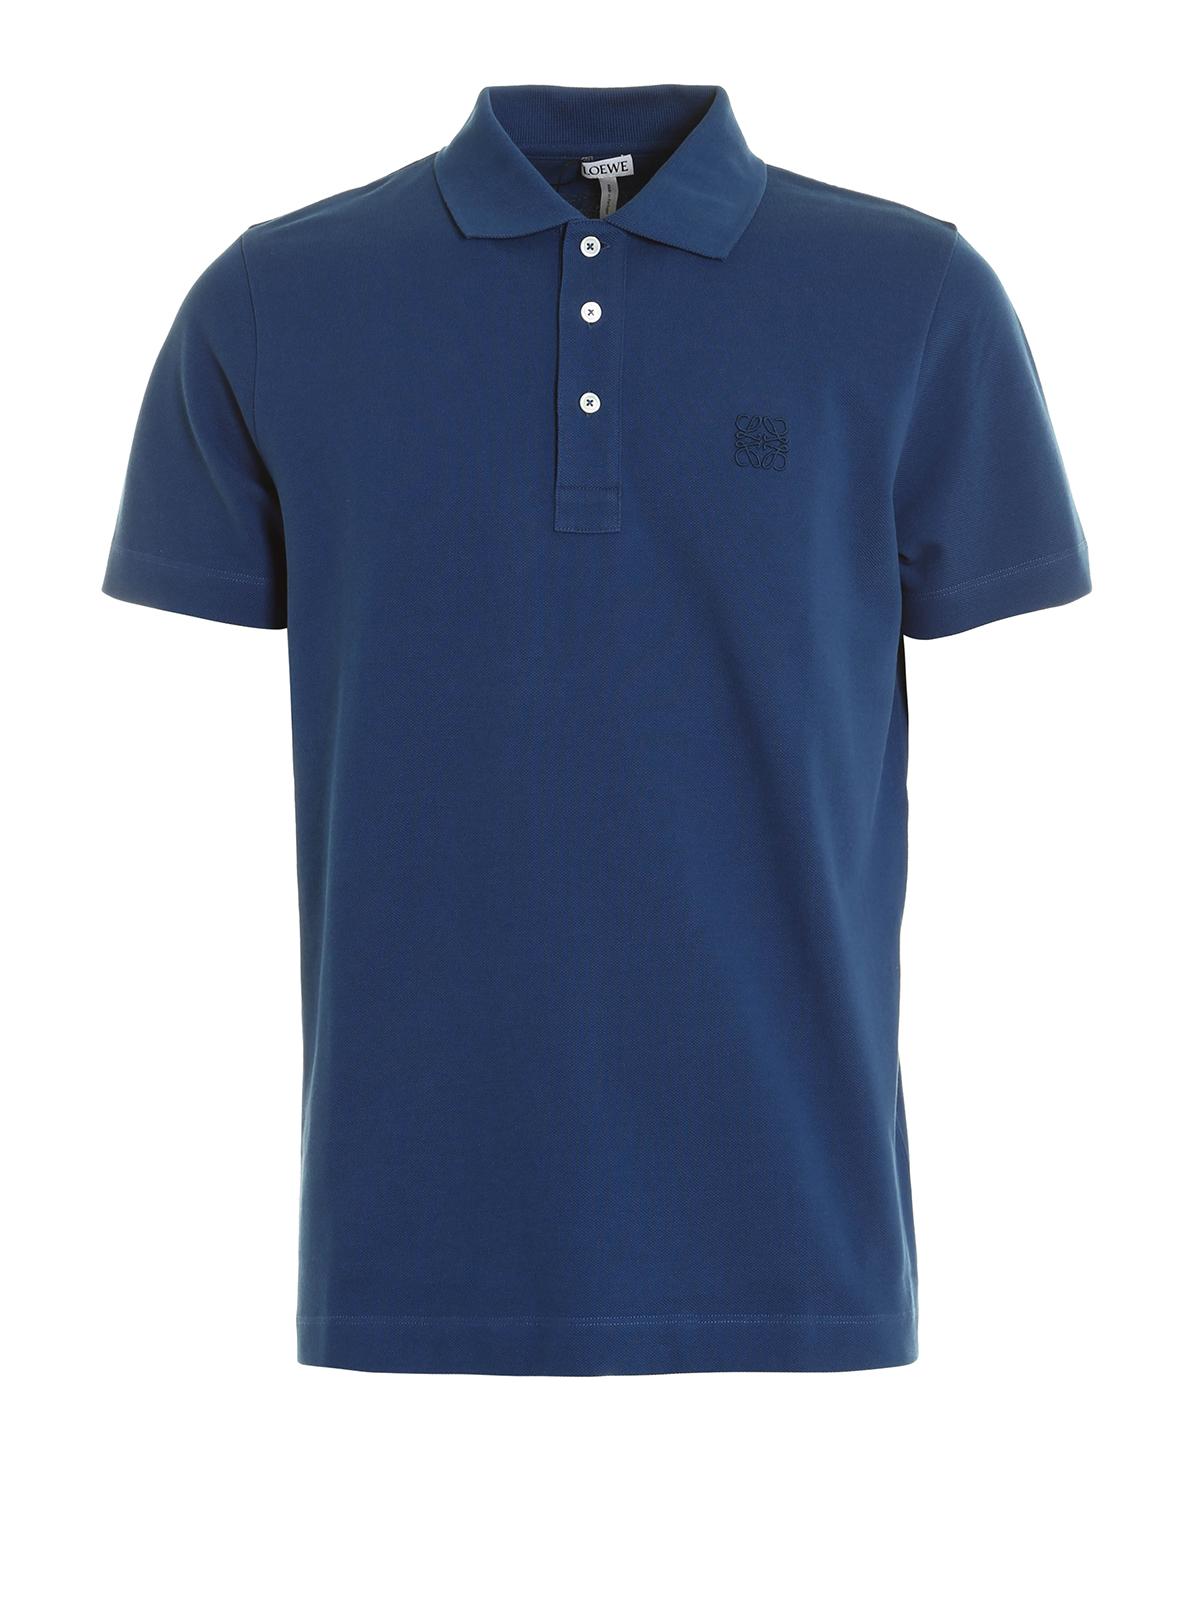 Embroidered logo polo shirt by loewe polo shirts shop for Polo shirts with logos